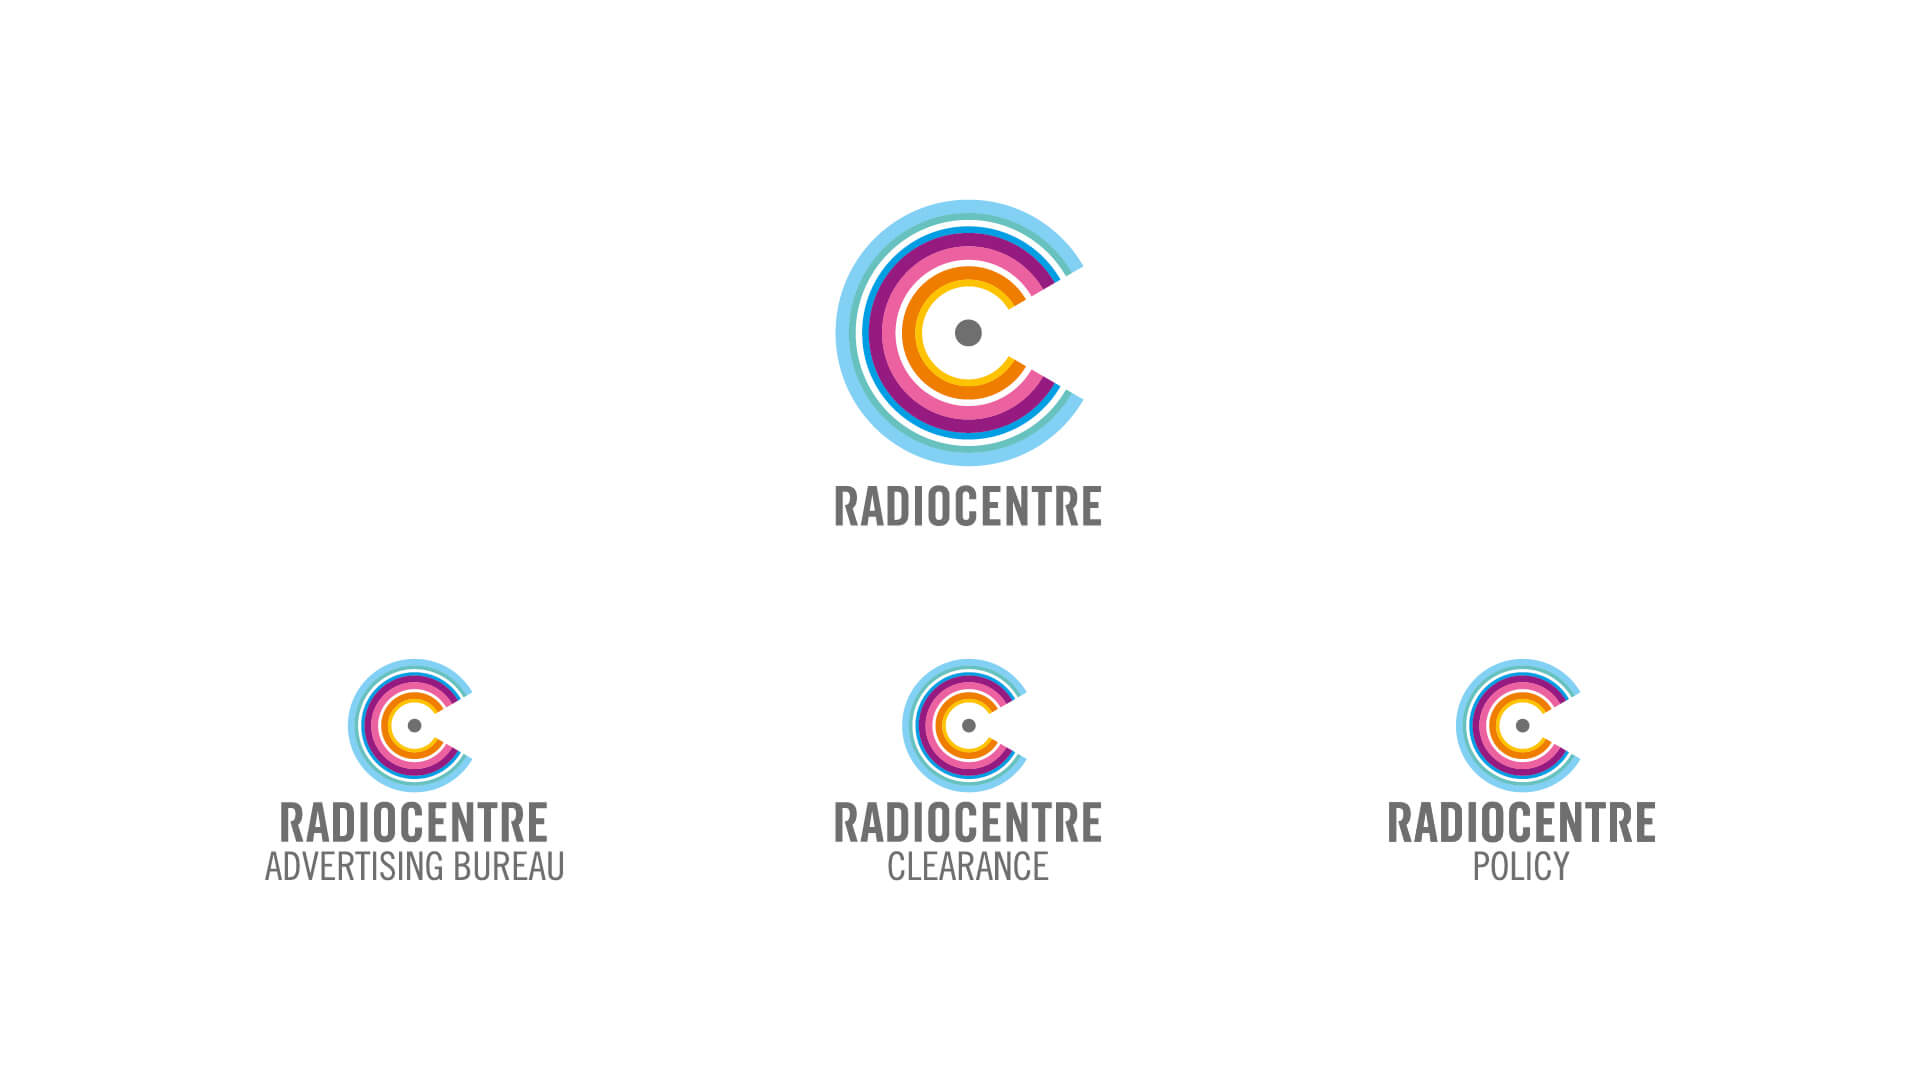 radiocentre brand architecture strategy